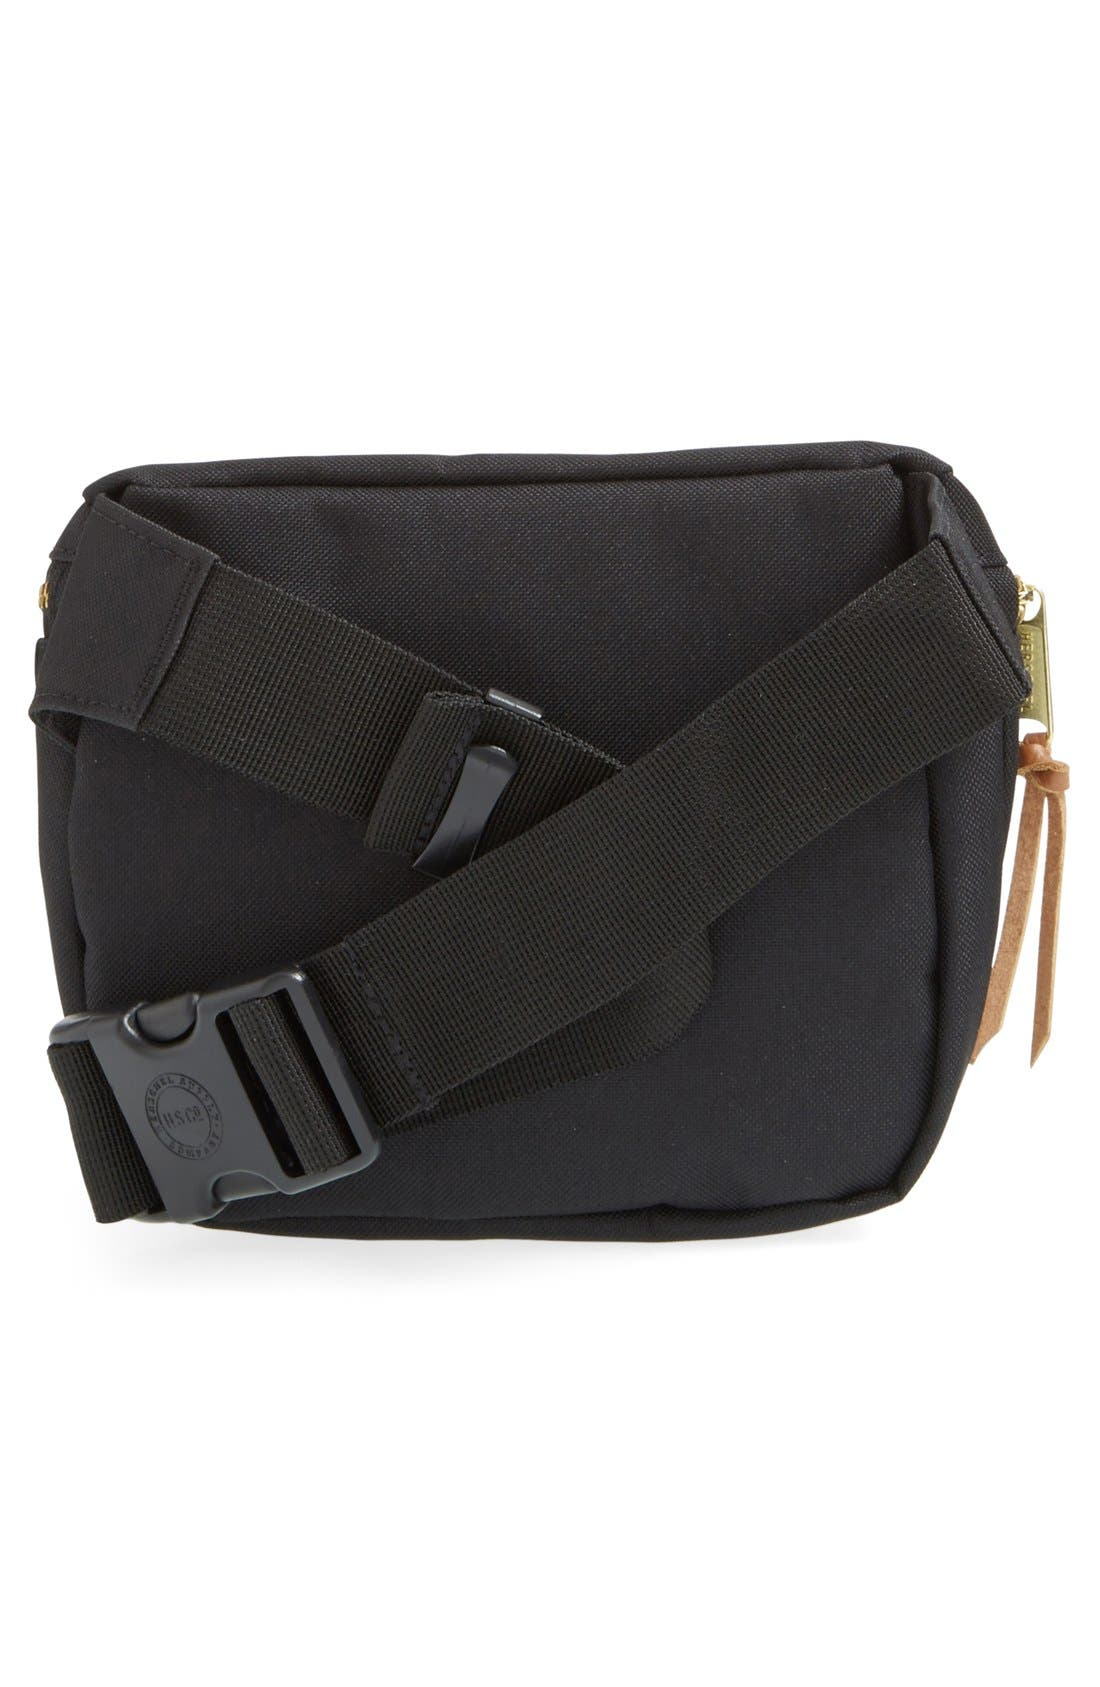 Fifteen Belt Bag,                             Alternate thumbnail 11, color,                             BLACK